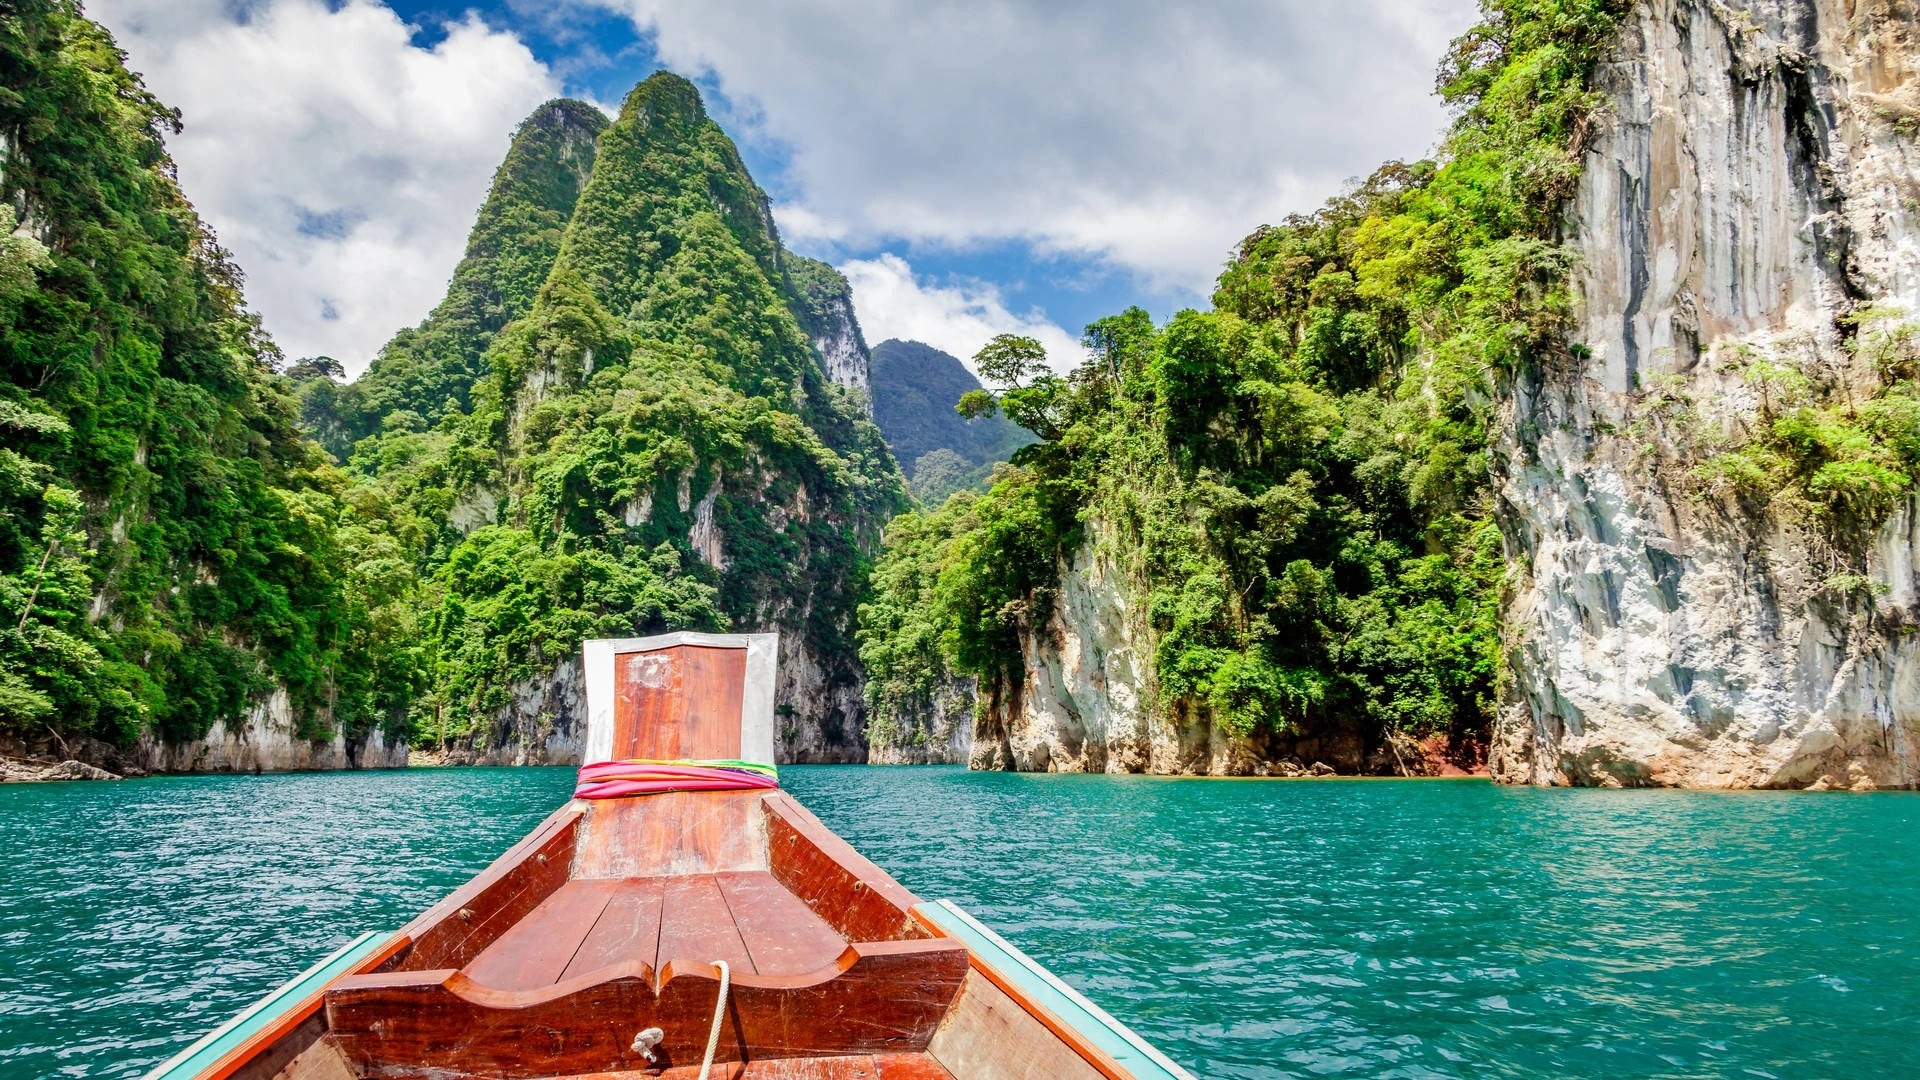 The ride from Koh Phangan to Khao Sok: A traveler review